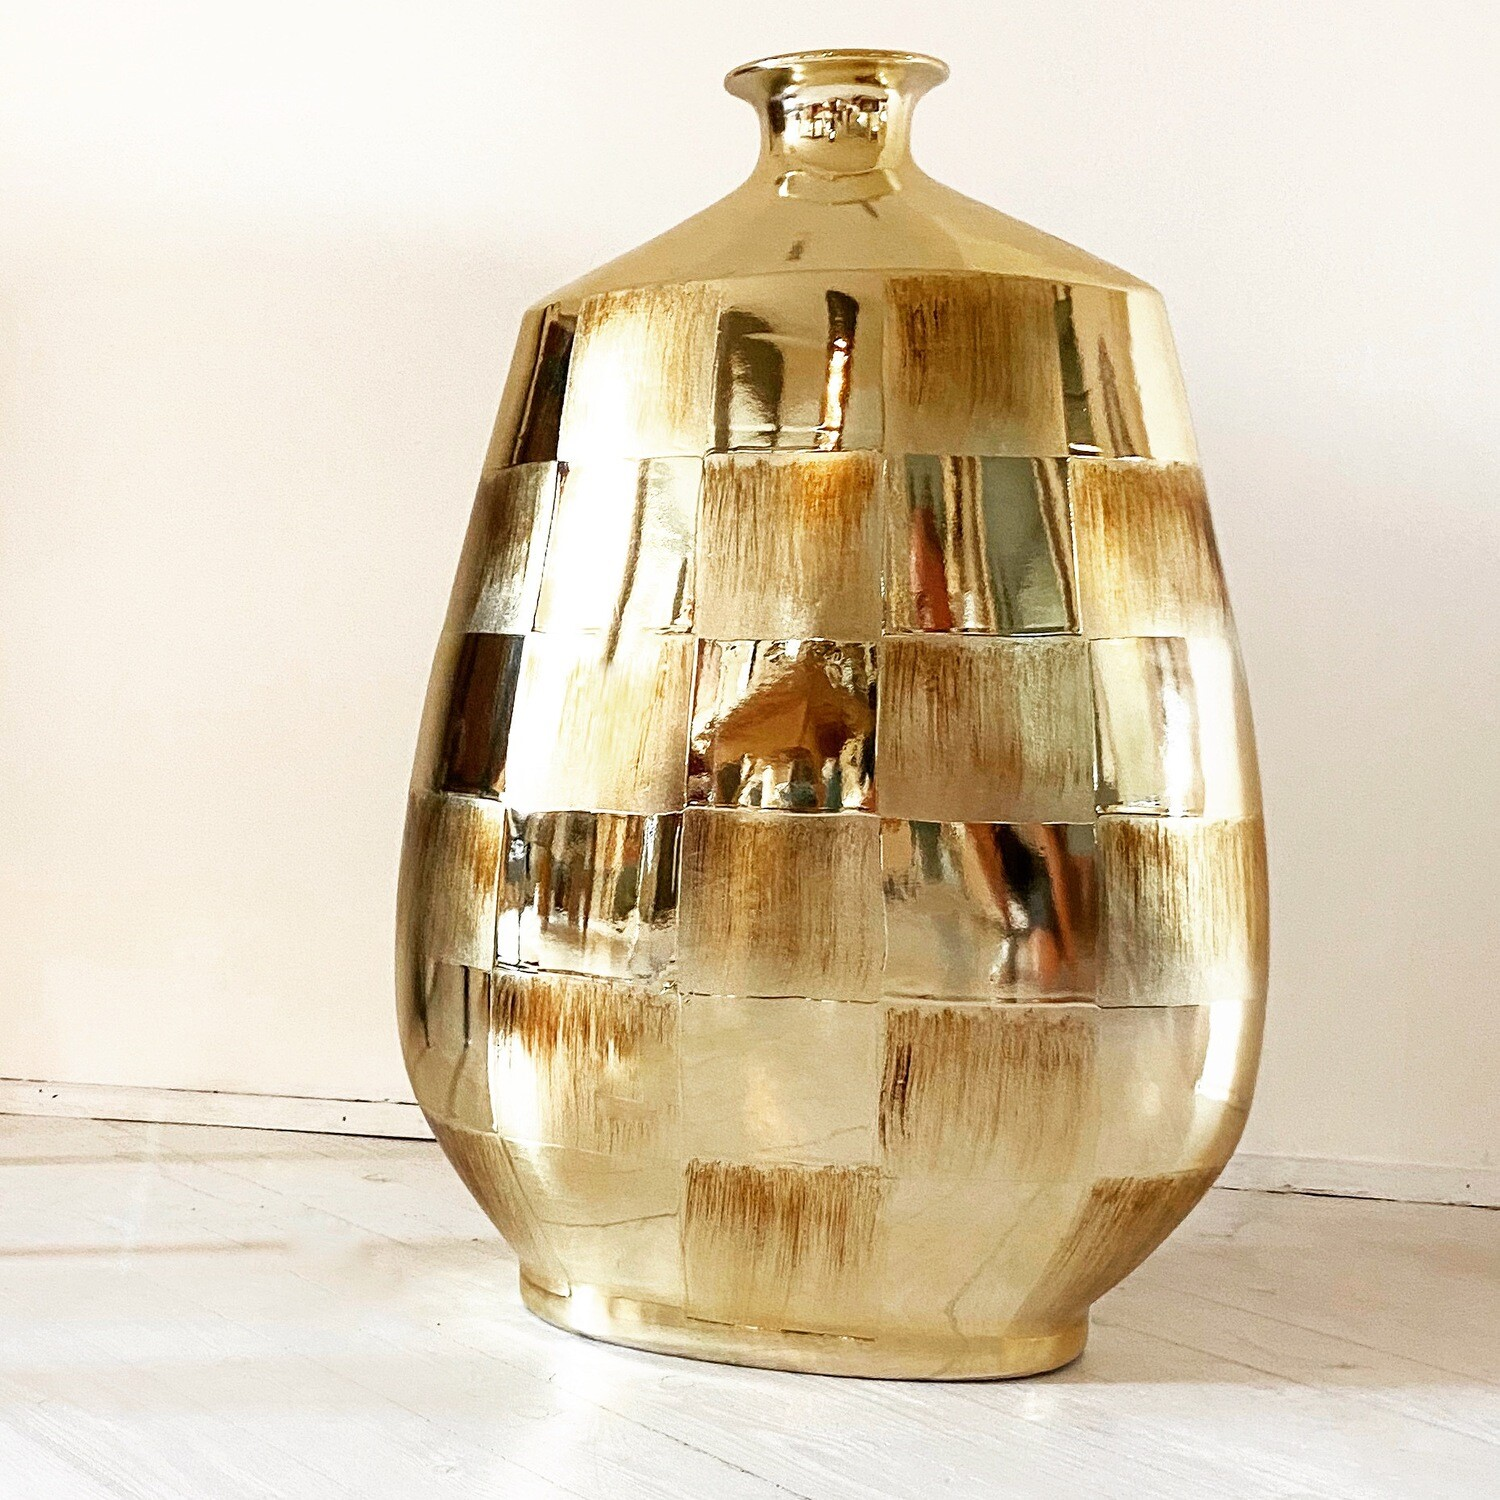 Bottle-shaped glass vase with gold casing